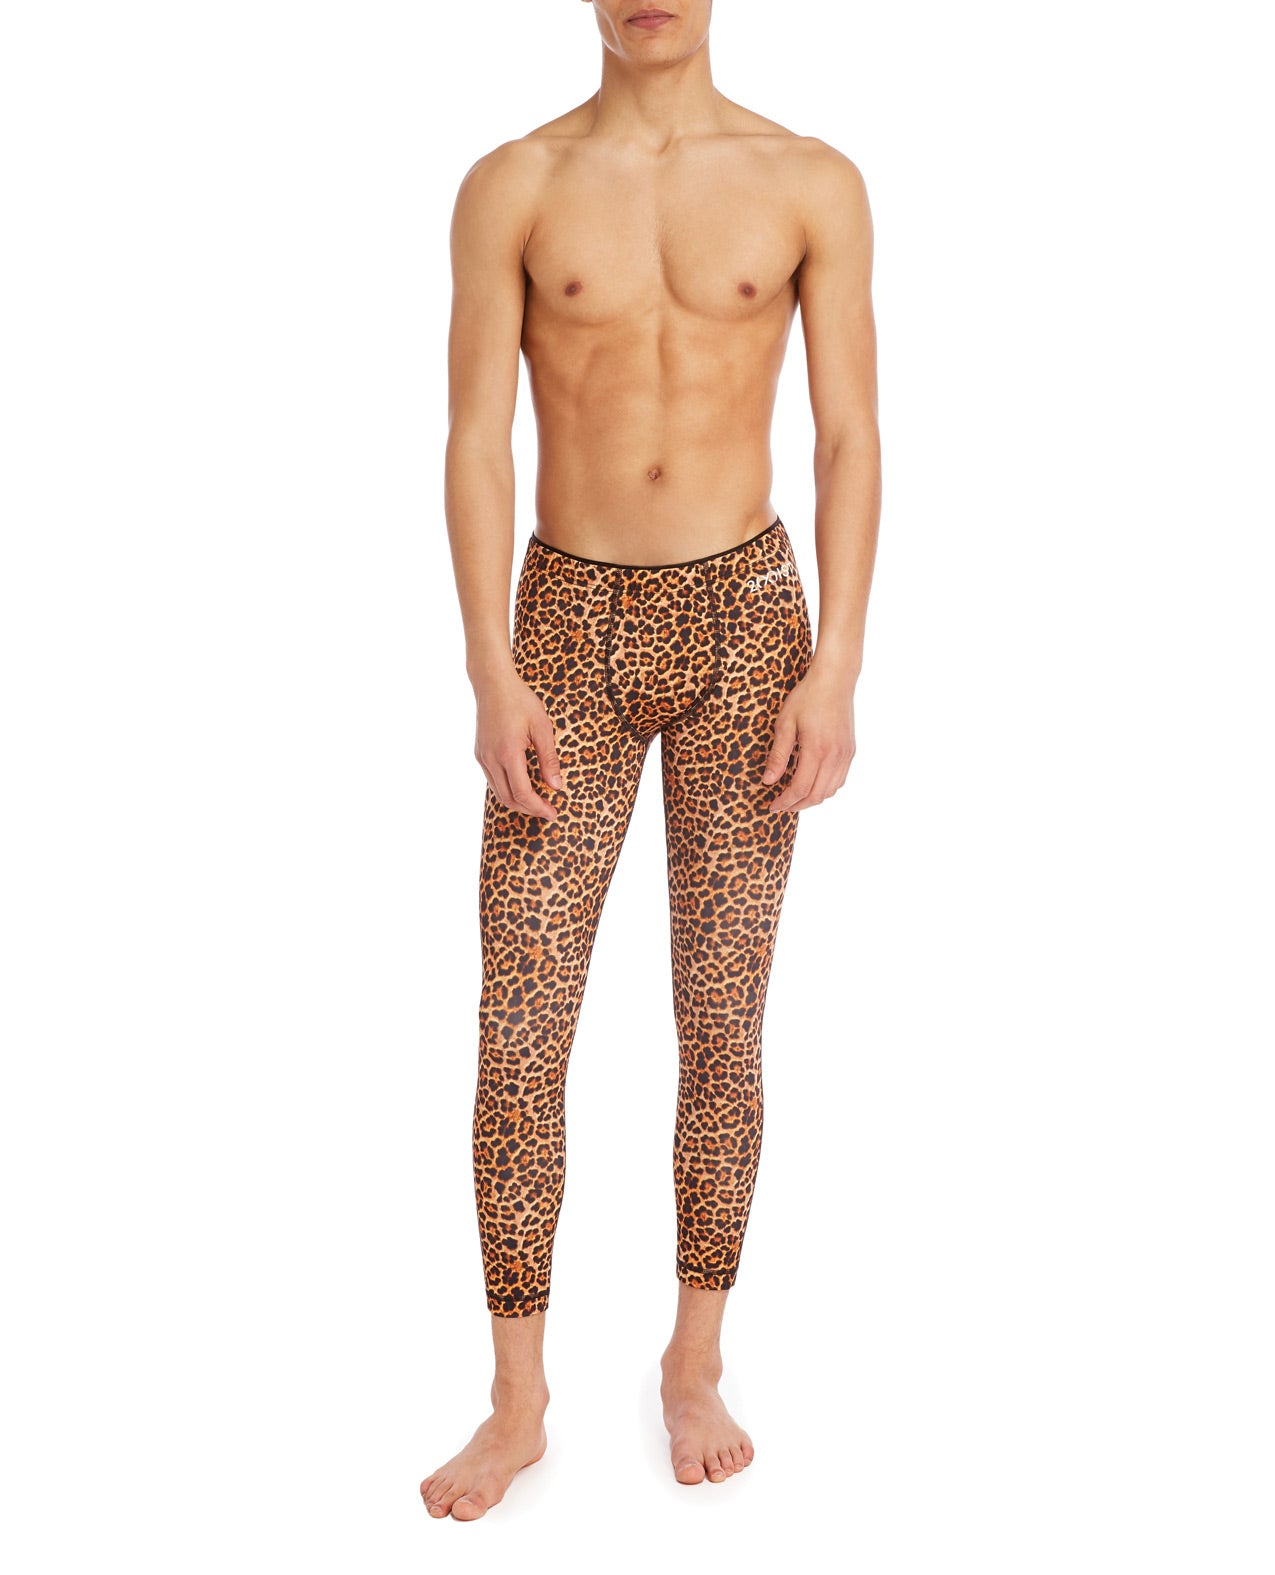 2XIST Performance Legging - Cheetah